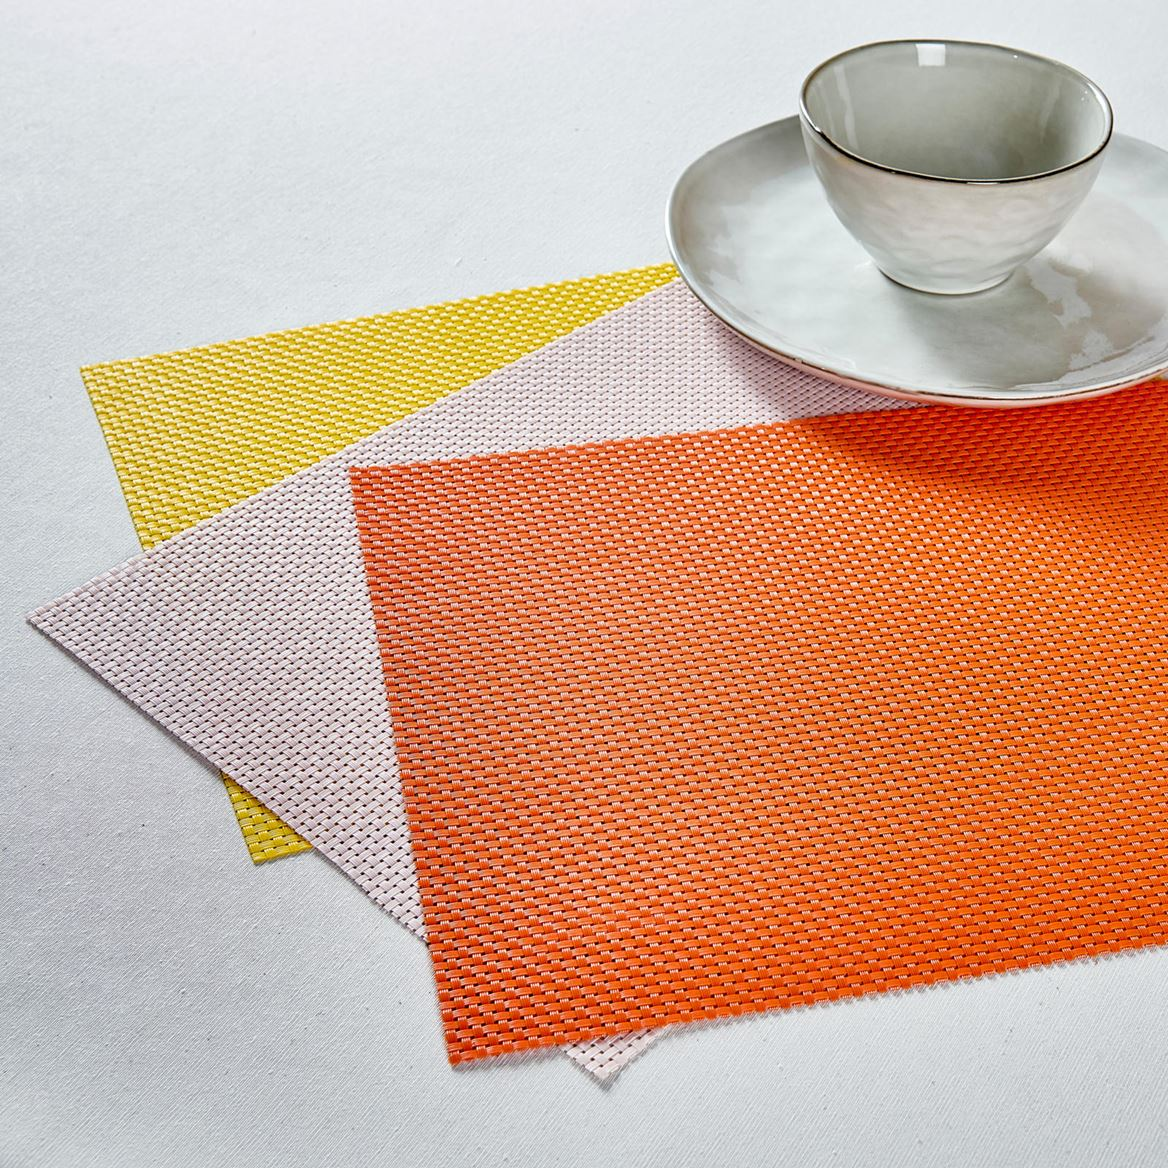 GRID Set de table 3 couleurs orange, jaune, rose Larg. 32 x Long. 45 cm_grid-set-de-table-3-couleurs-orange,-jaune,-rose-larg--32-x-long--45-cm